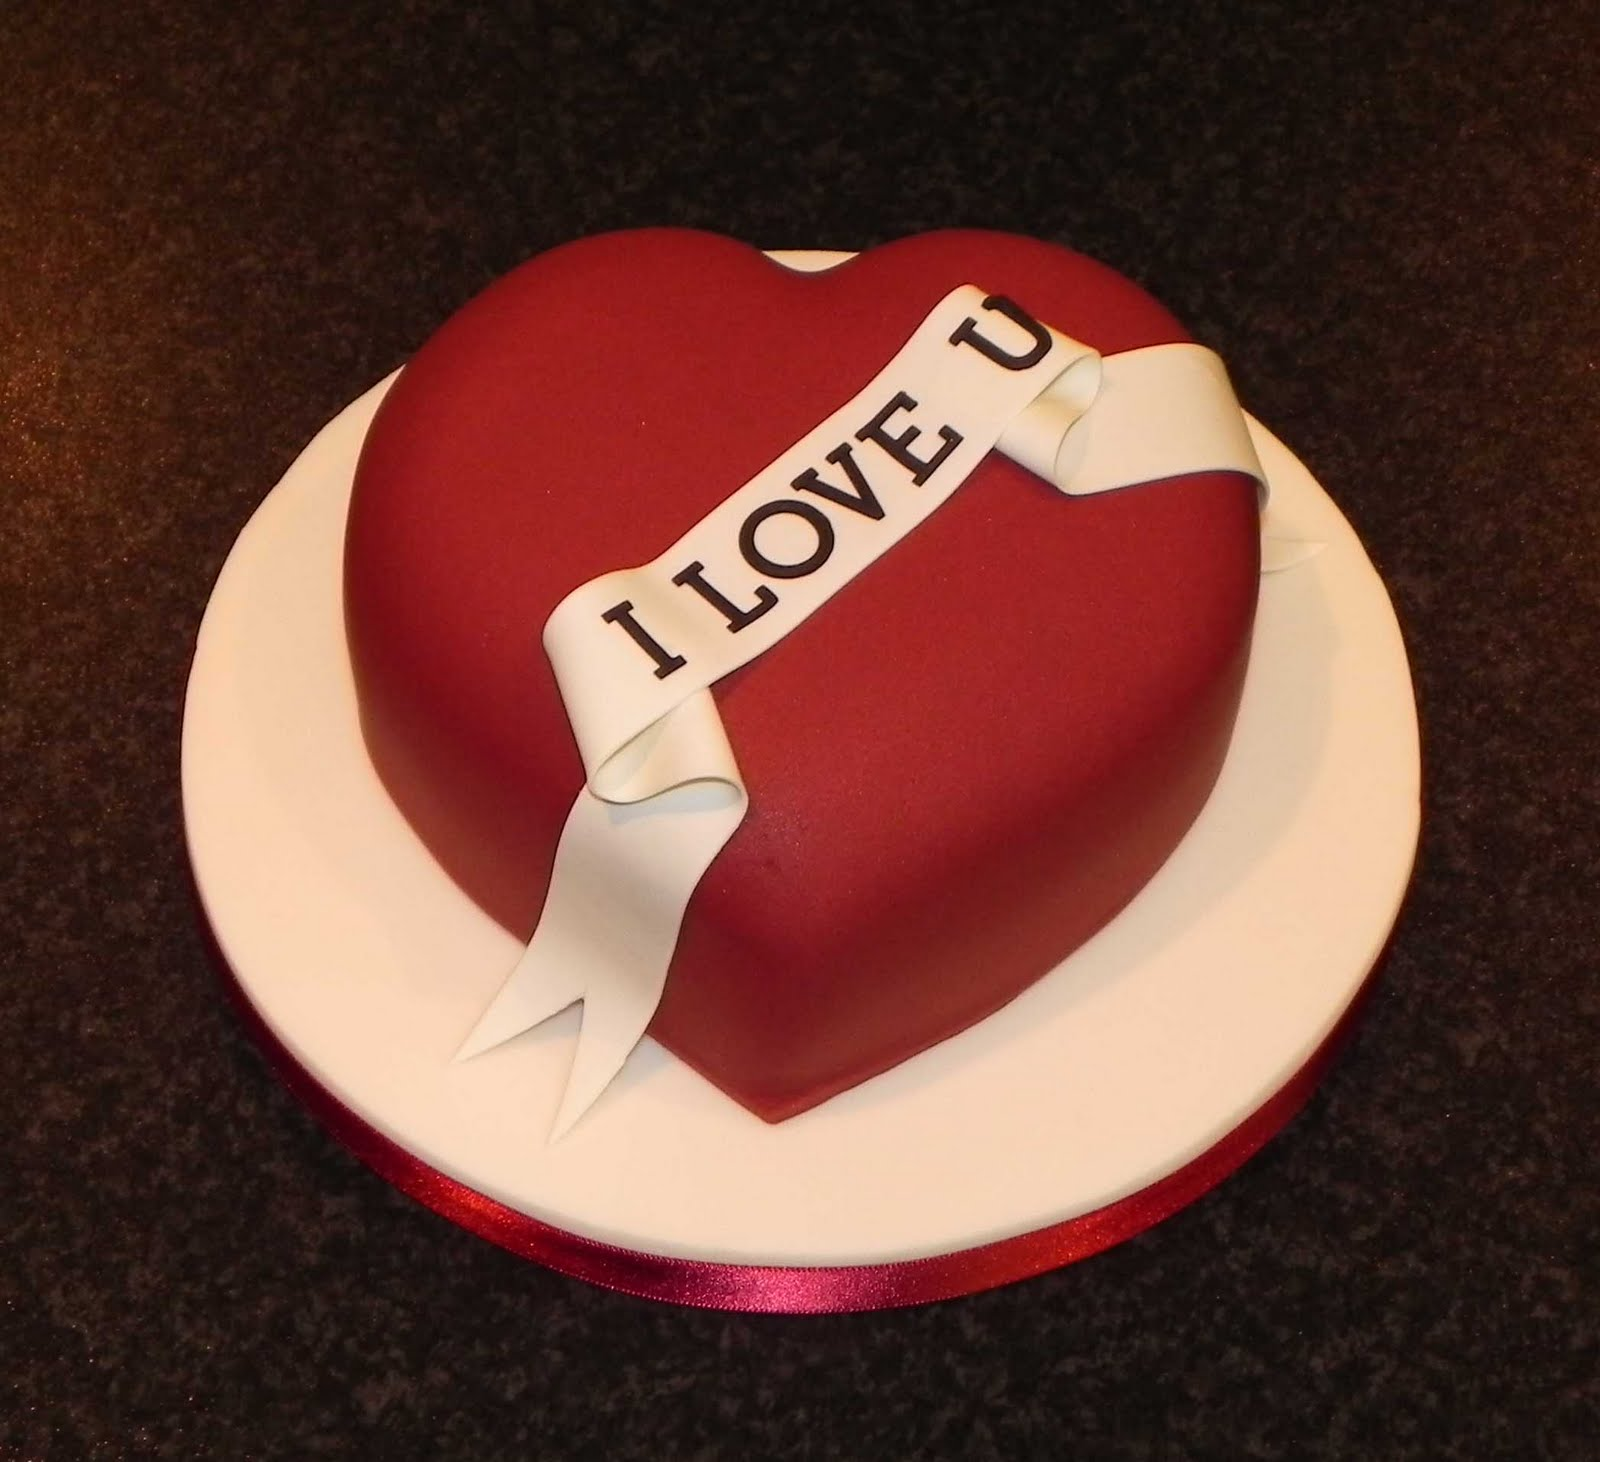 Images Of Heart Shape Cake Designs : Cake by Lisa Price: Heart shaped cake for Valentines day